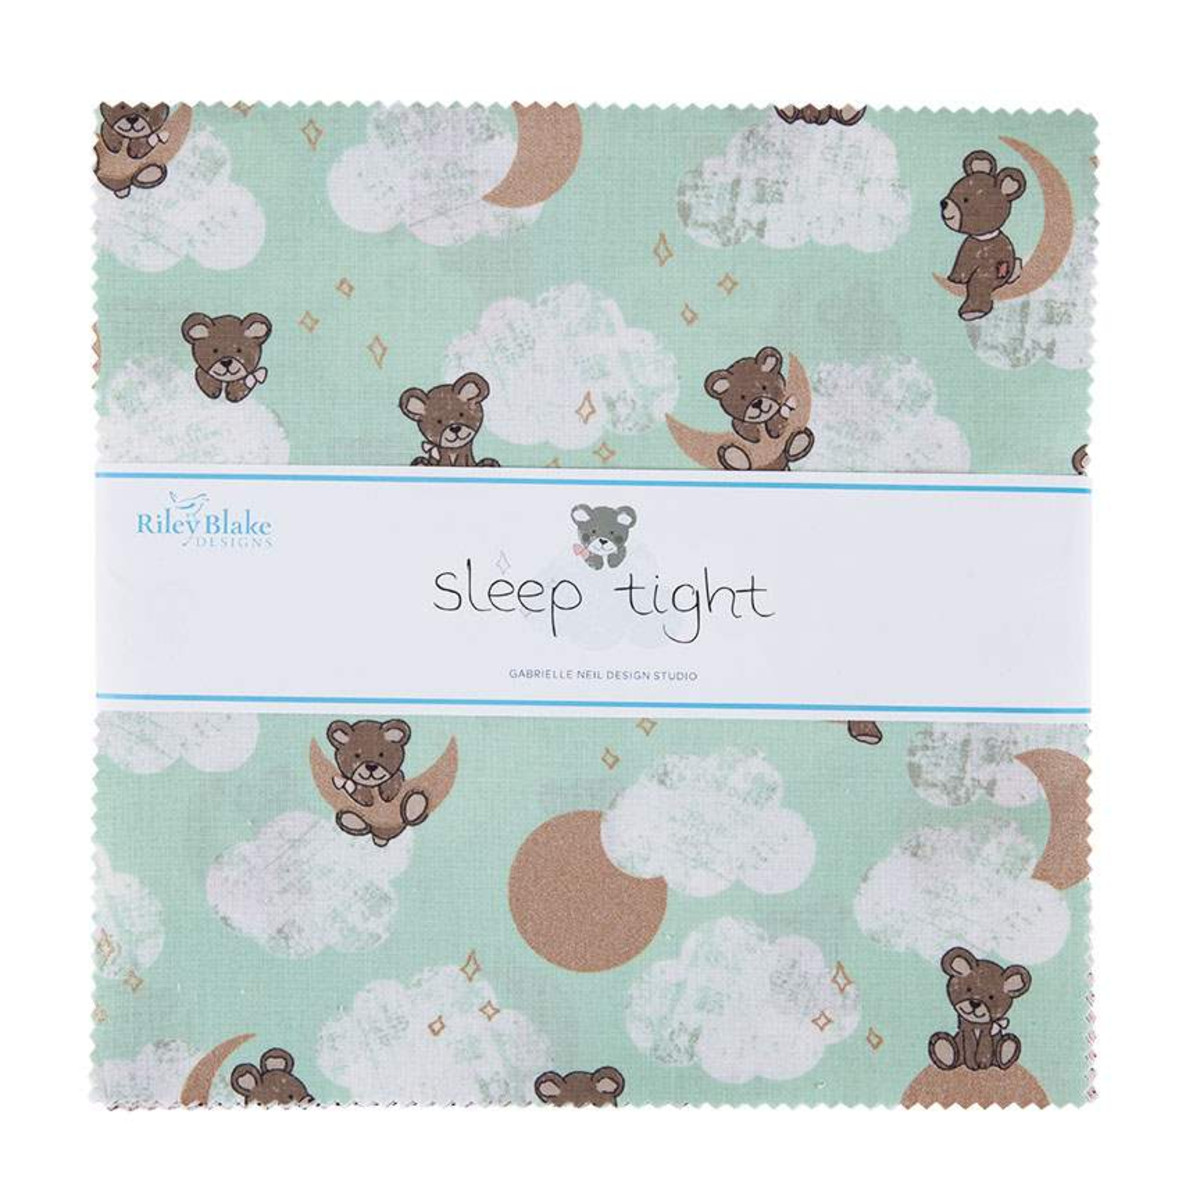 Riley Blake Layer Cake - Sleep Tight by Gabrielle Neil Design Studio